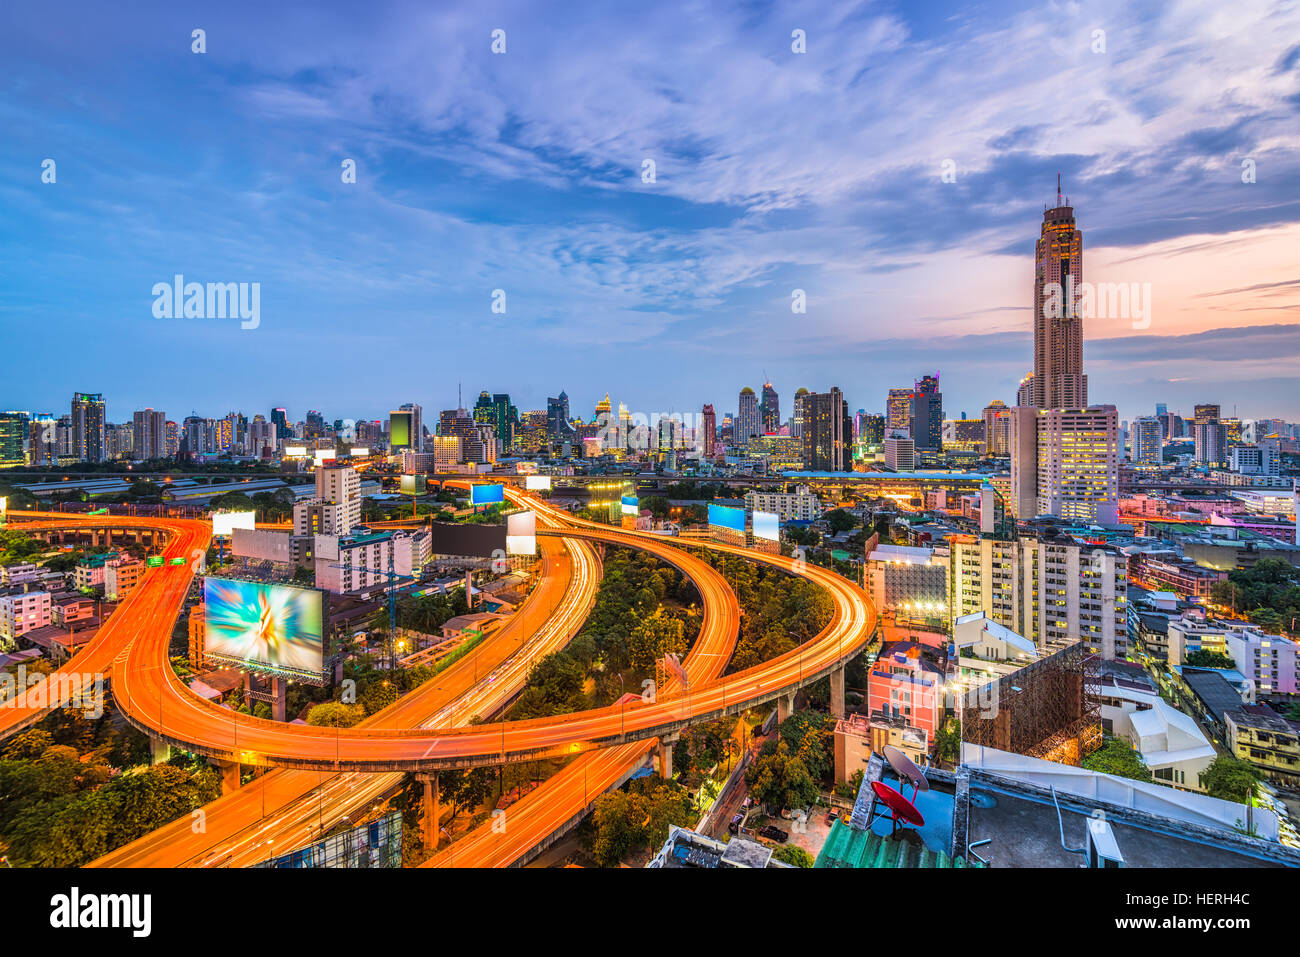 Bangkok, Thailand skyline from Ratchathewi District. - Stock Image